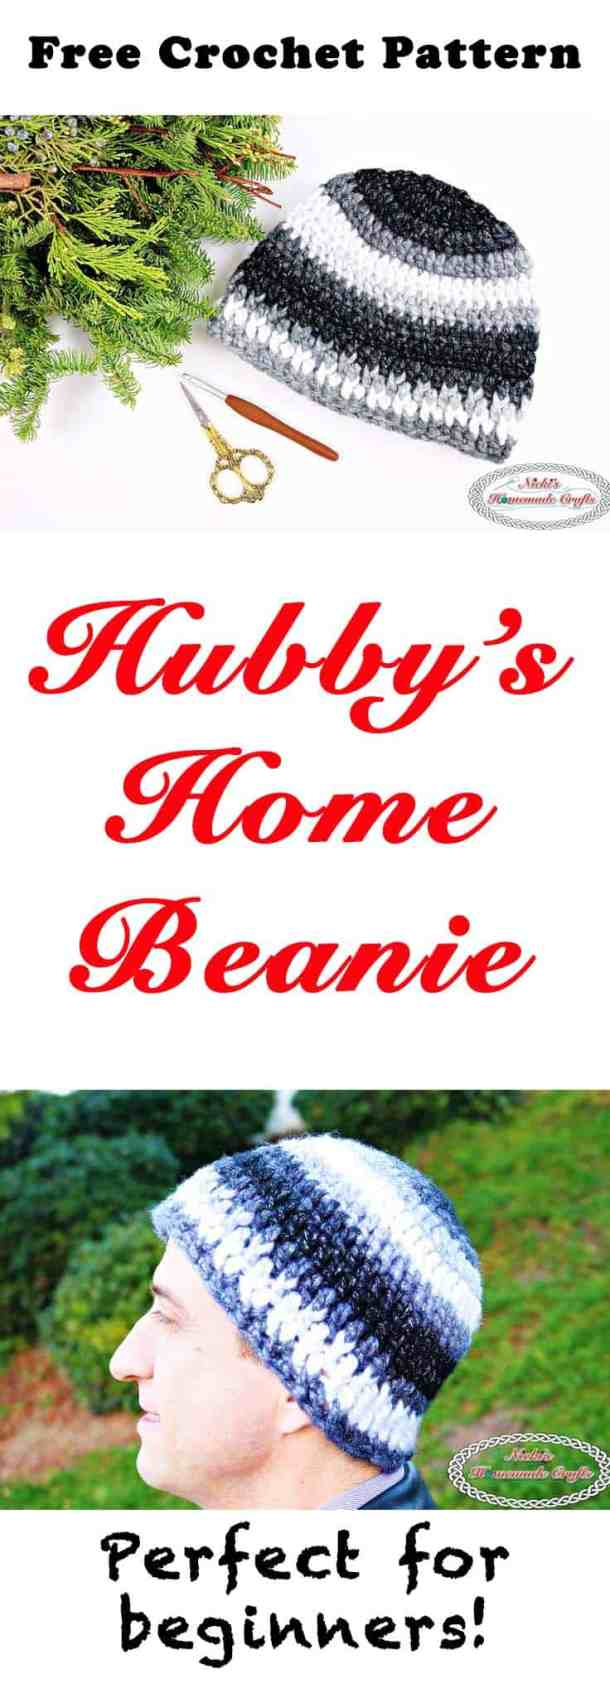 Hubby's Home Beanie Free Crochet Pattern by Nicki's Homemade Crafts #crochet #beanie #hubby #husband #home #freecrochetpattern #free #pattern #easy